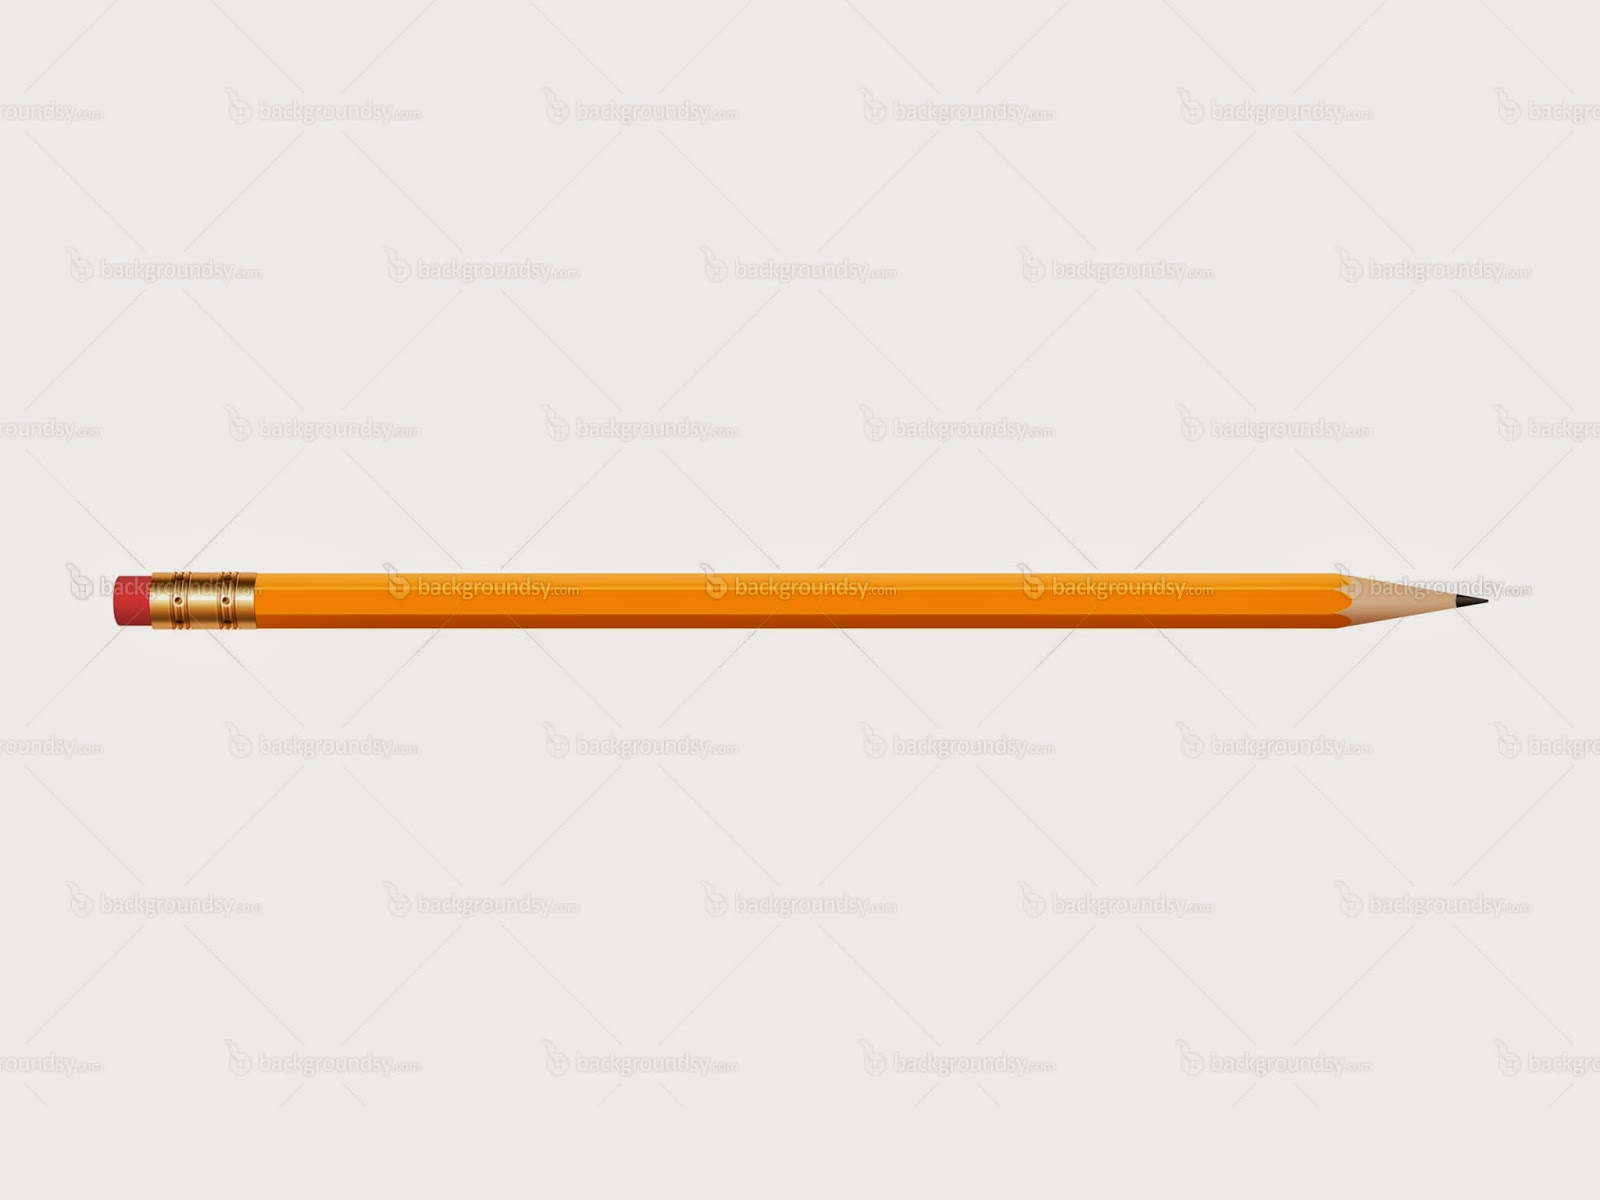 pencil broadly just one example